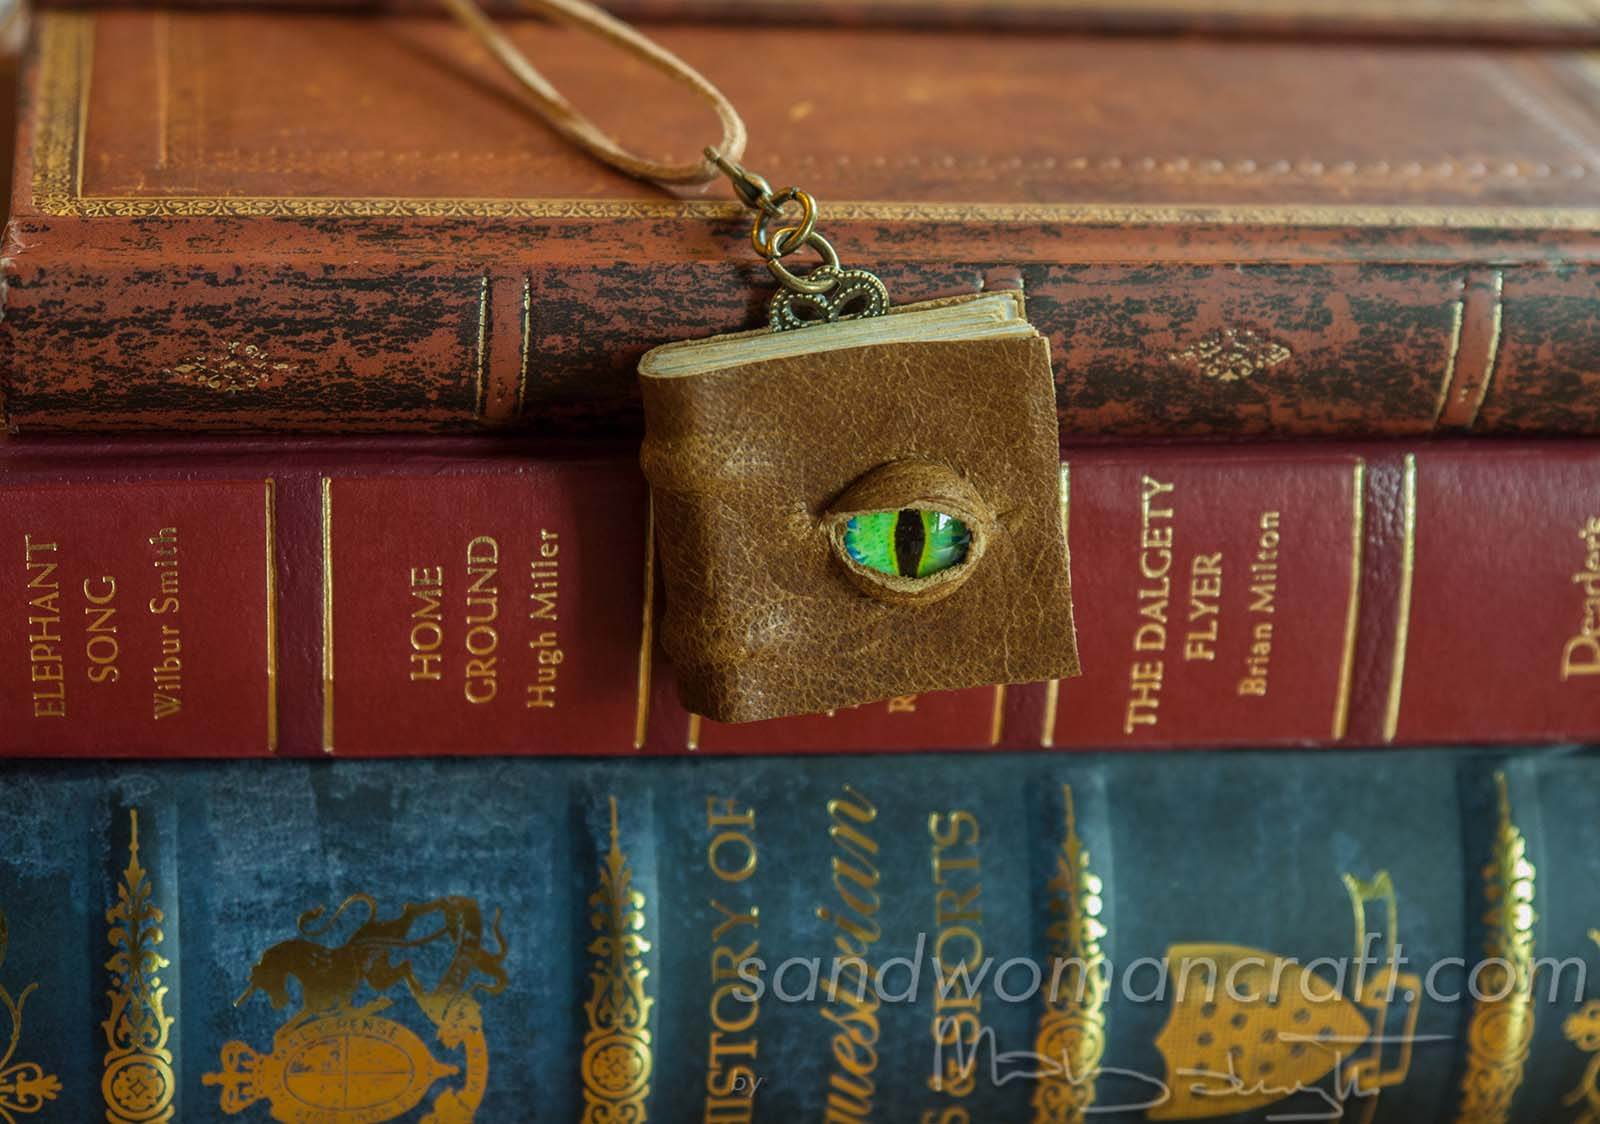 Miniature book necklace, olive-brown textured leather, front cover with glass Dragons's eye